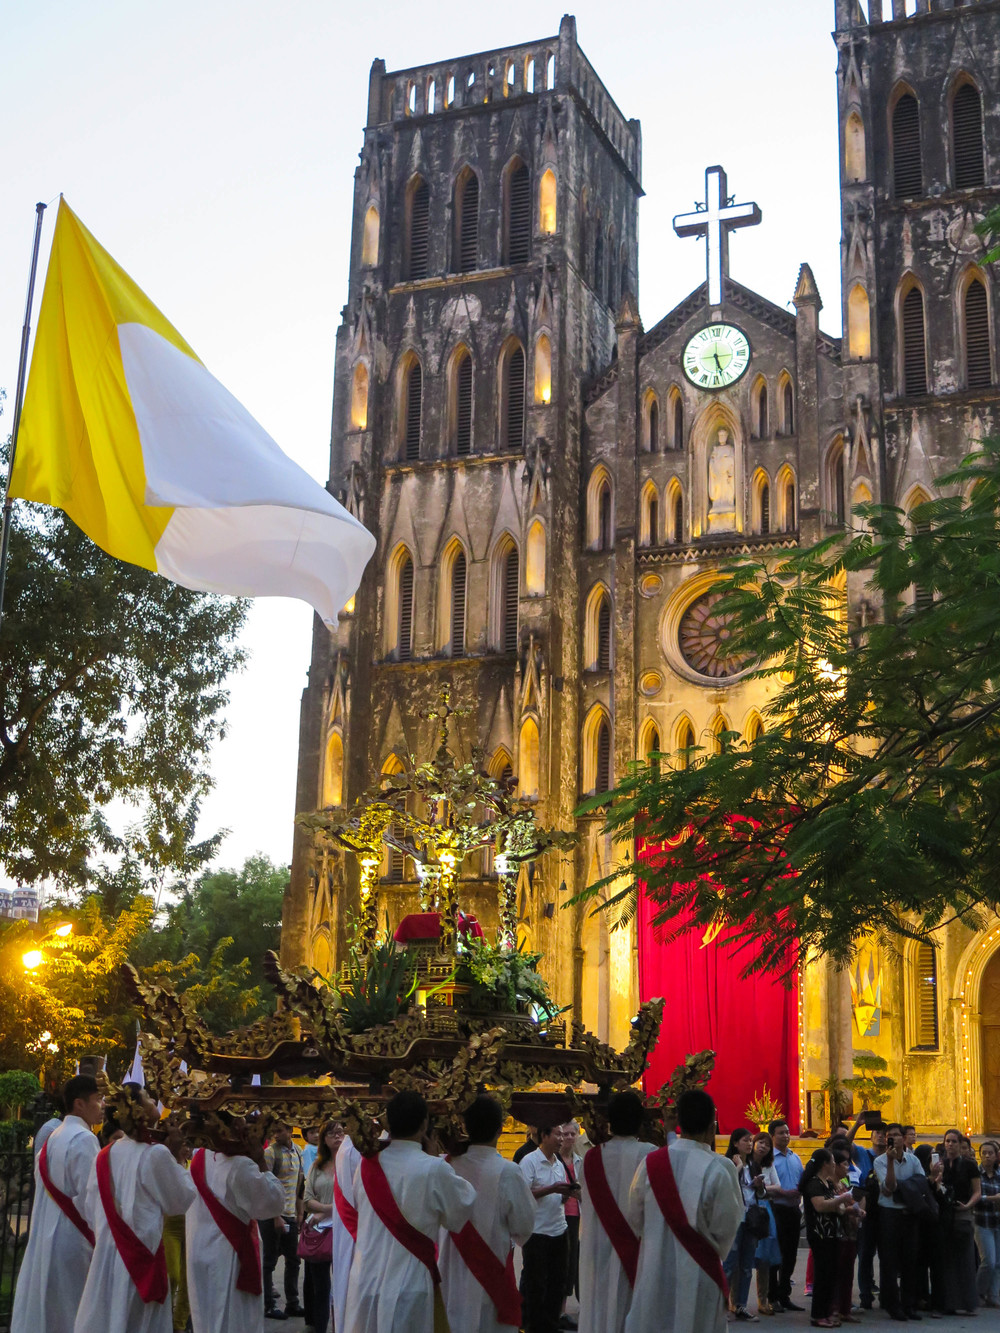 Hanoi's St. Joseph's Cathedral: A Landmark French Legacy